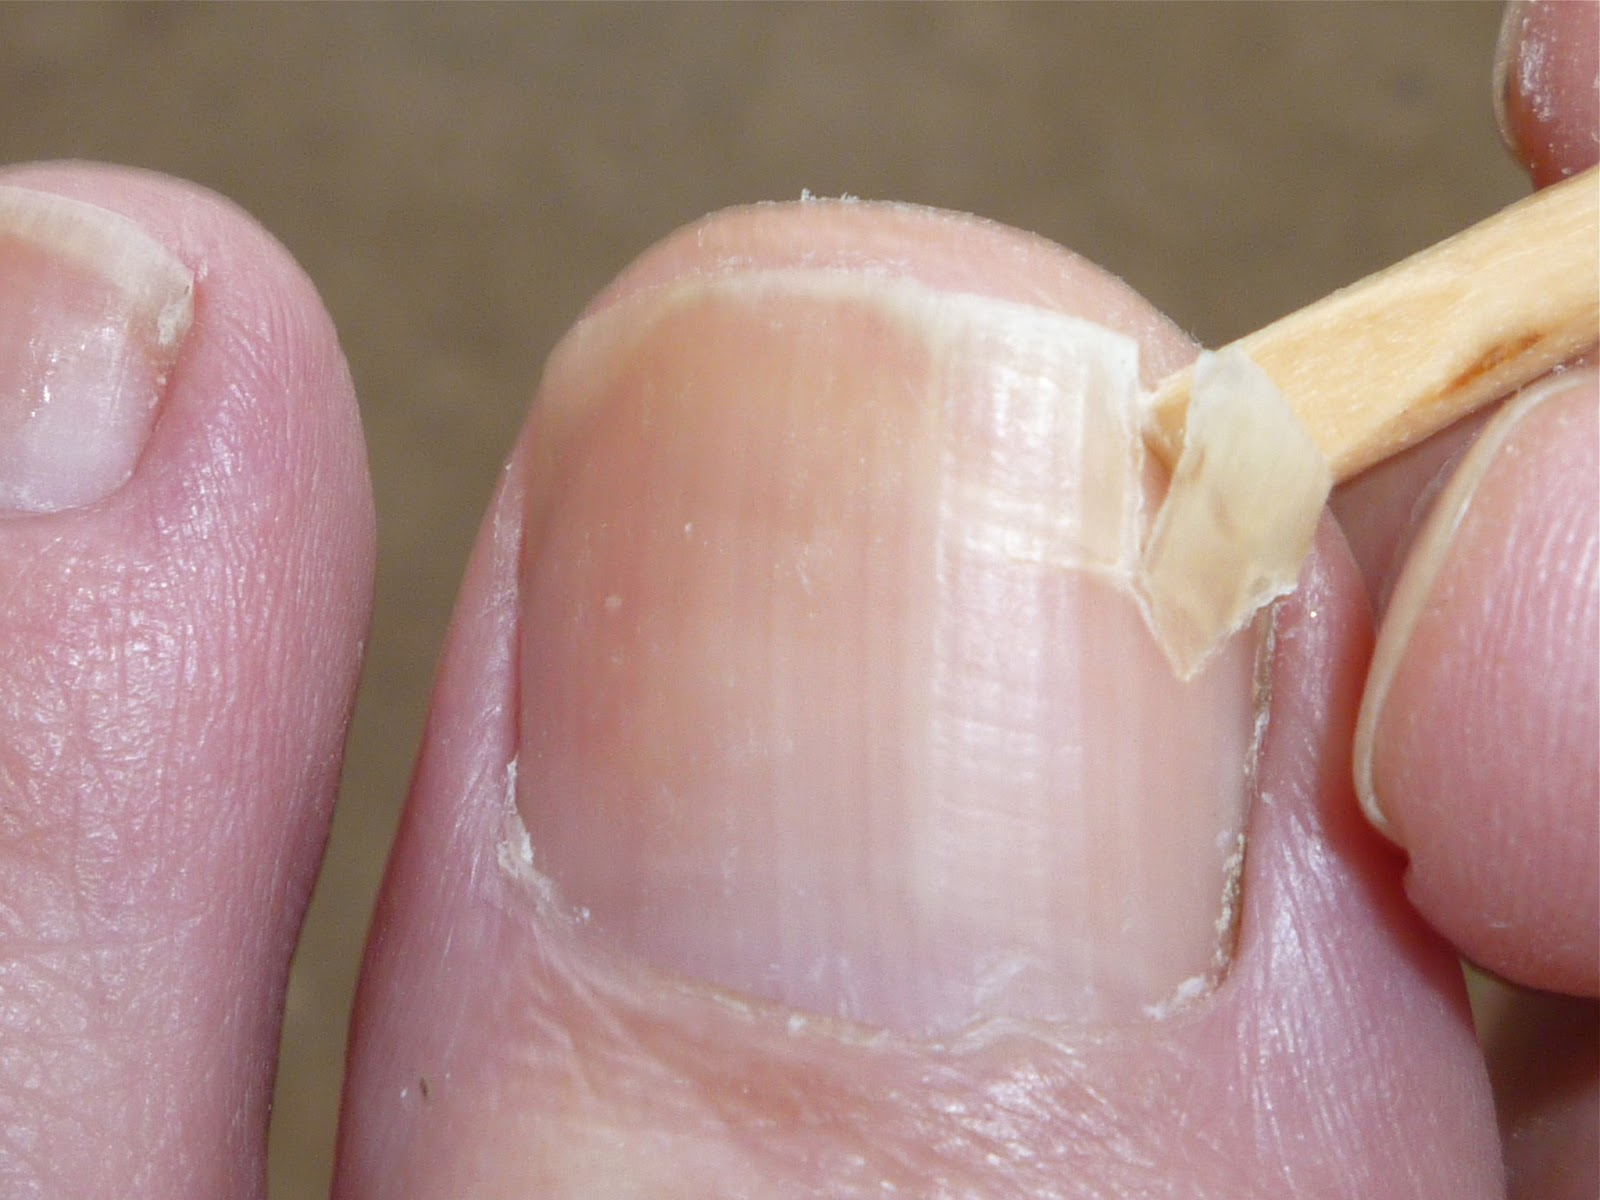 fingernail separated from nail bed #10